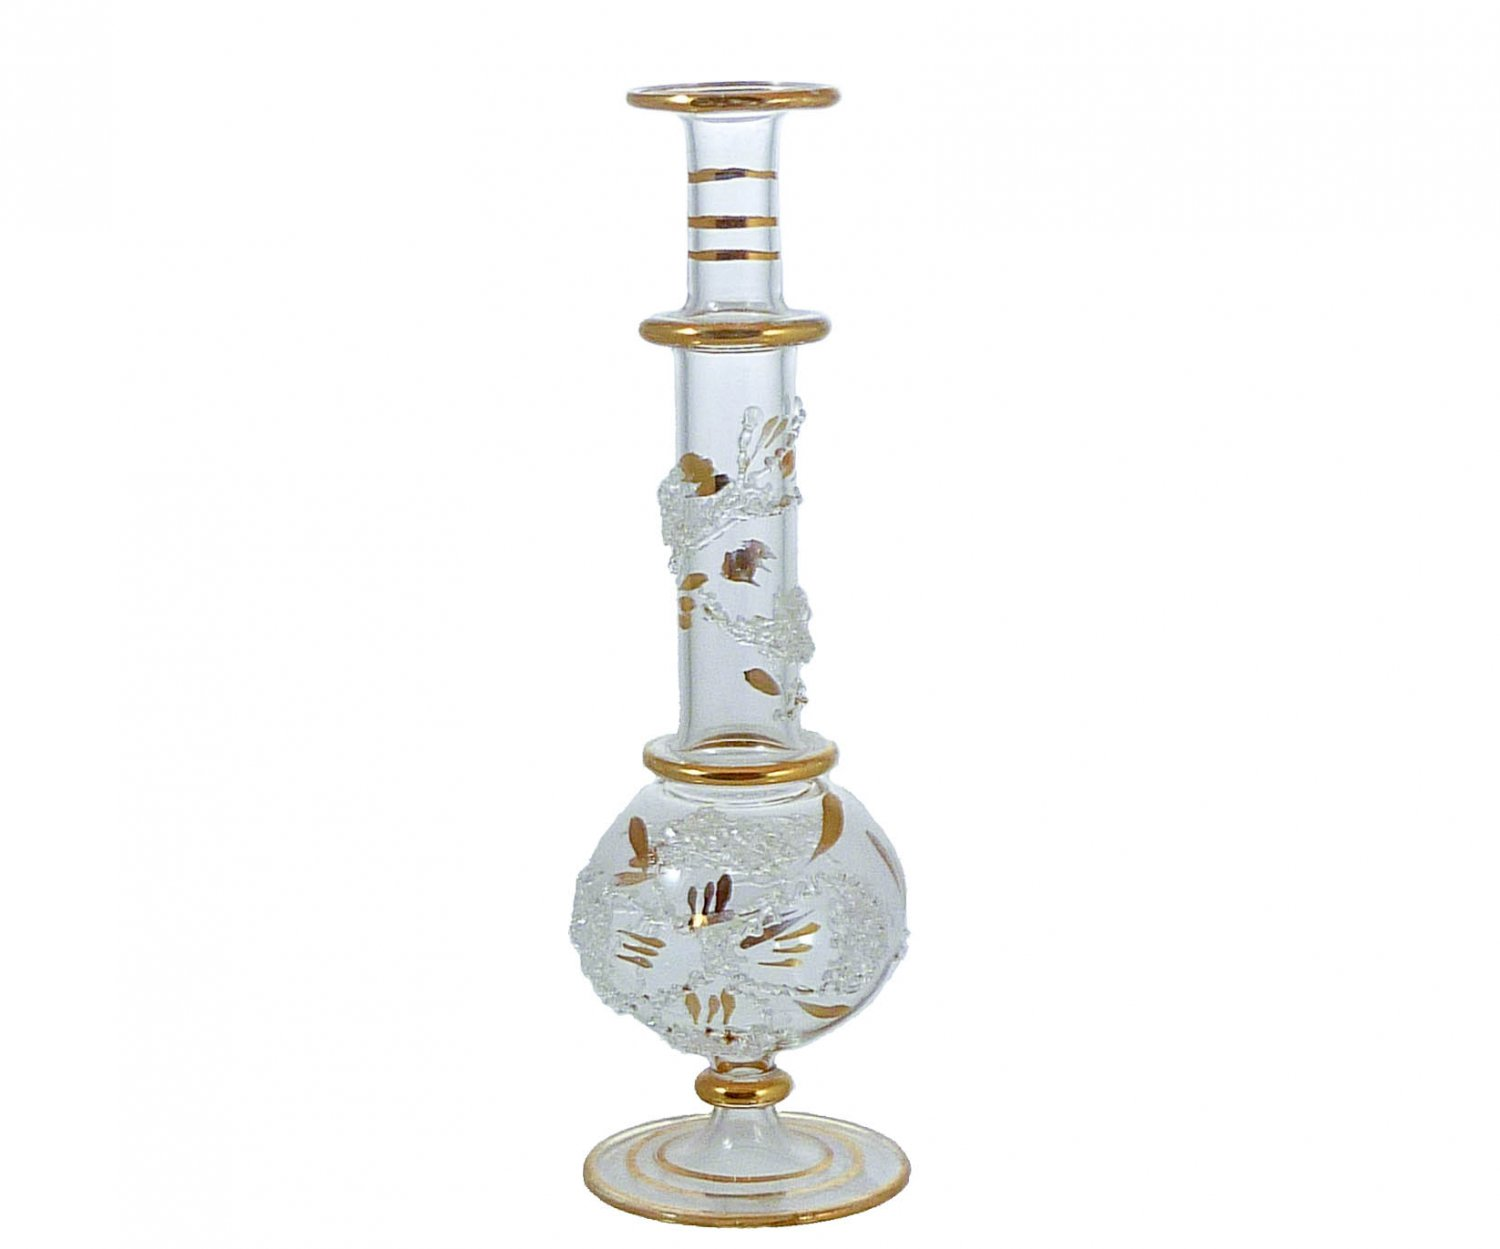 Frit and Gold-Gilded Mouth-Blown Perfume Bottle Vase